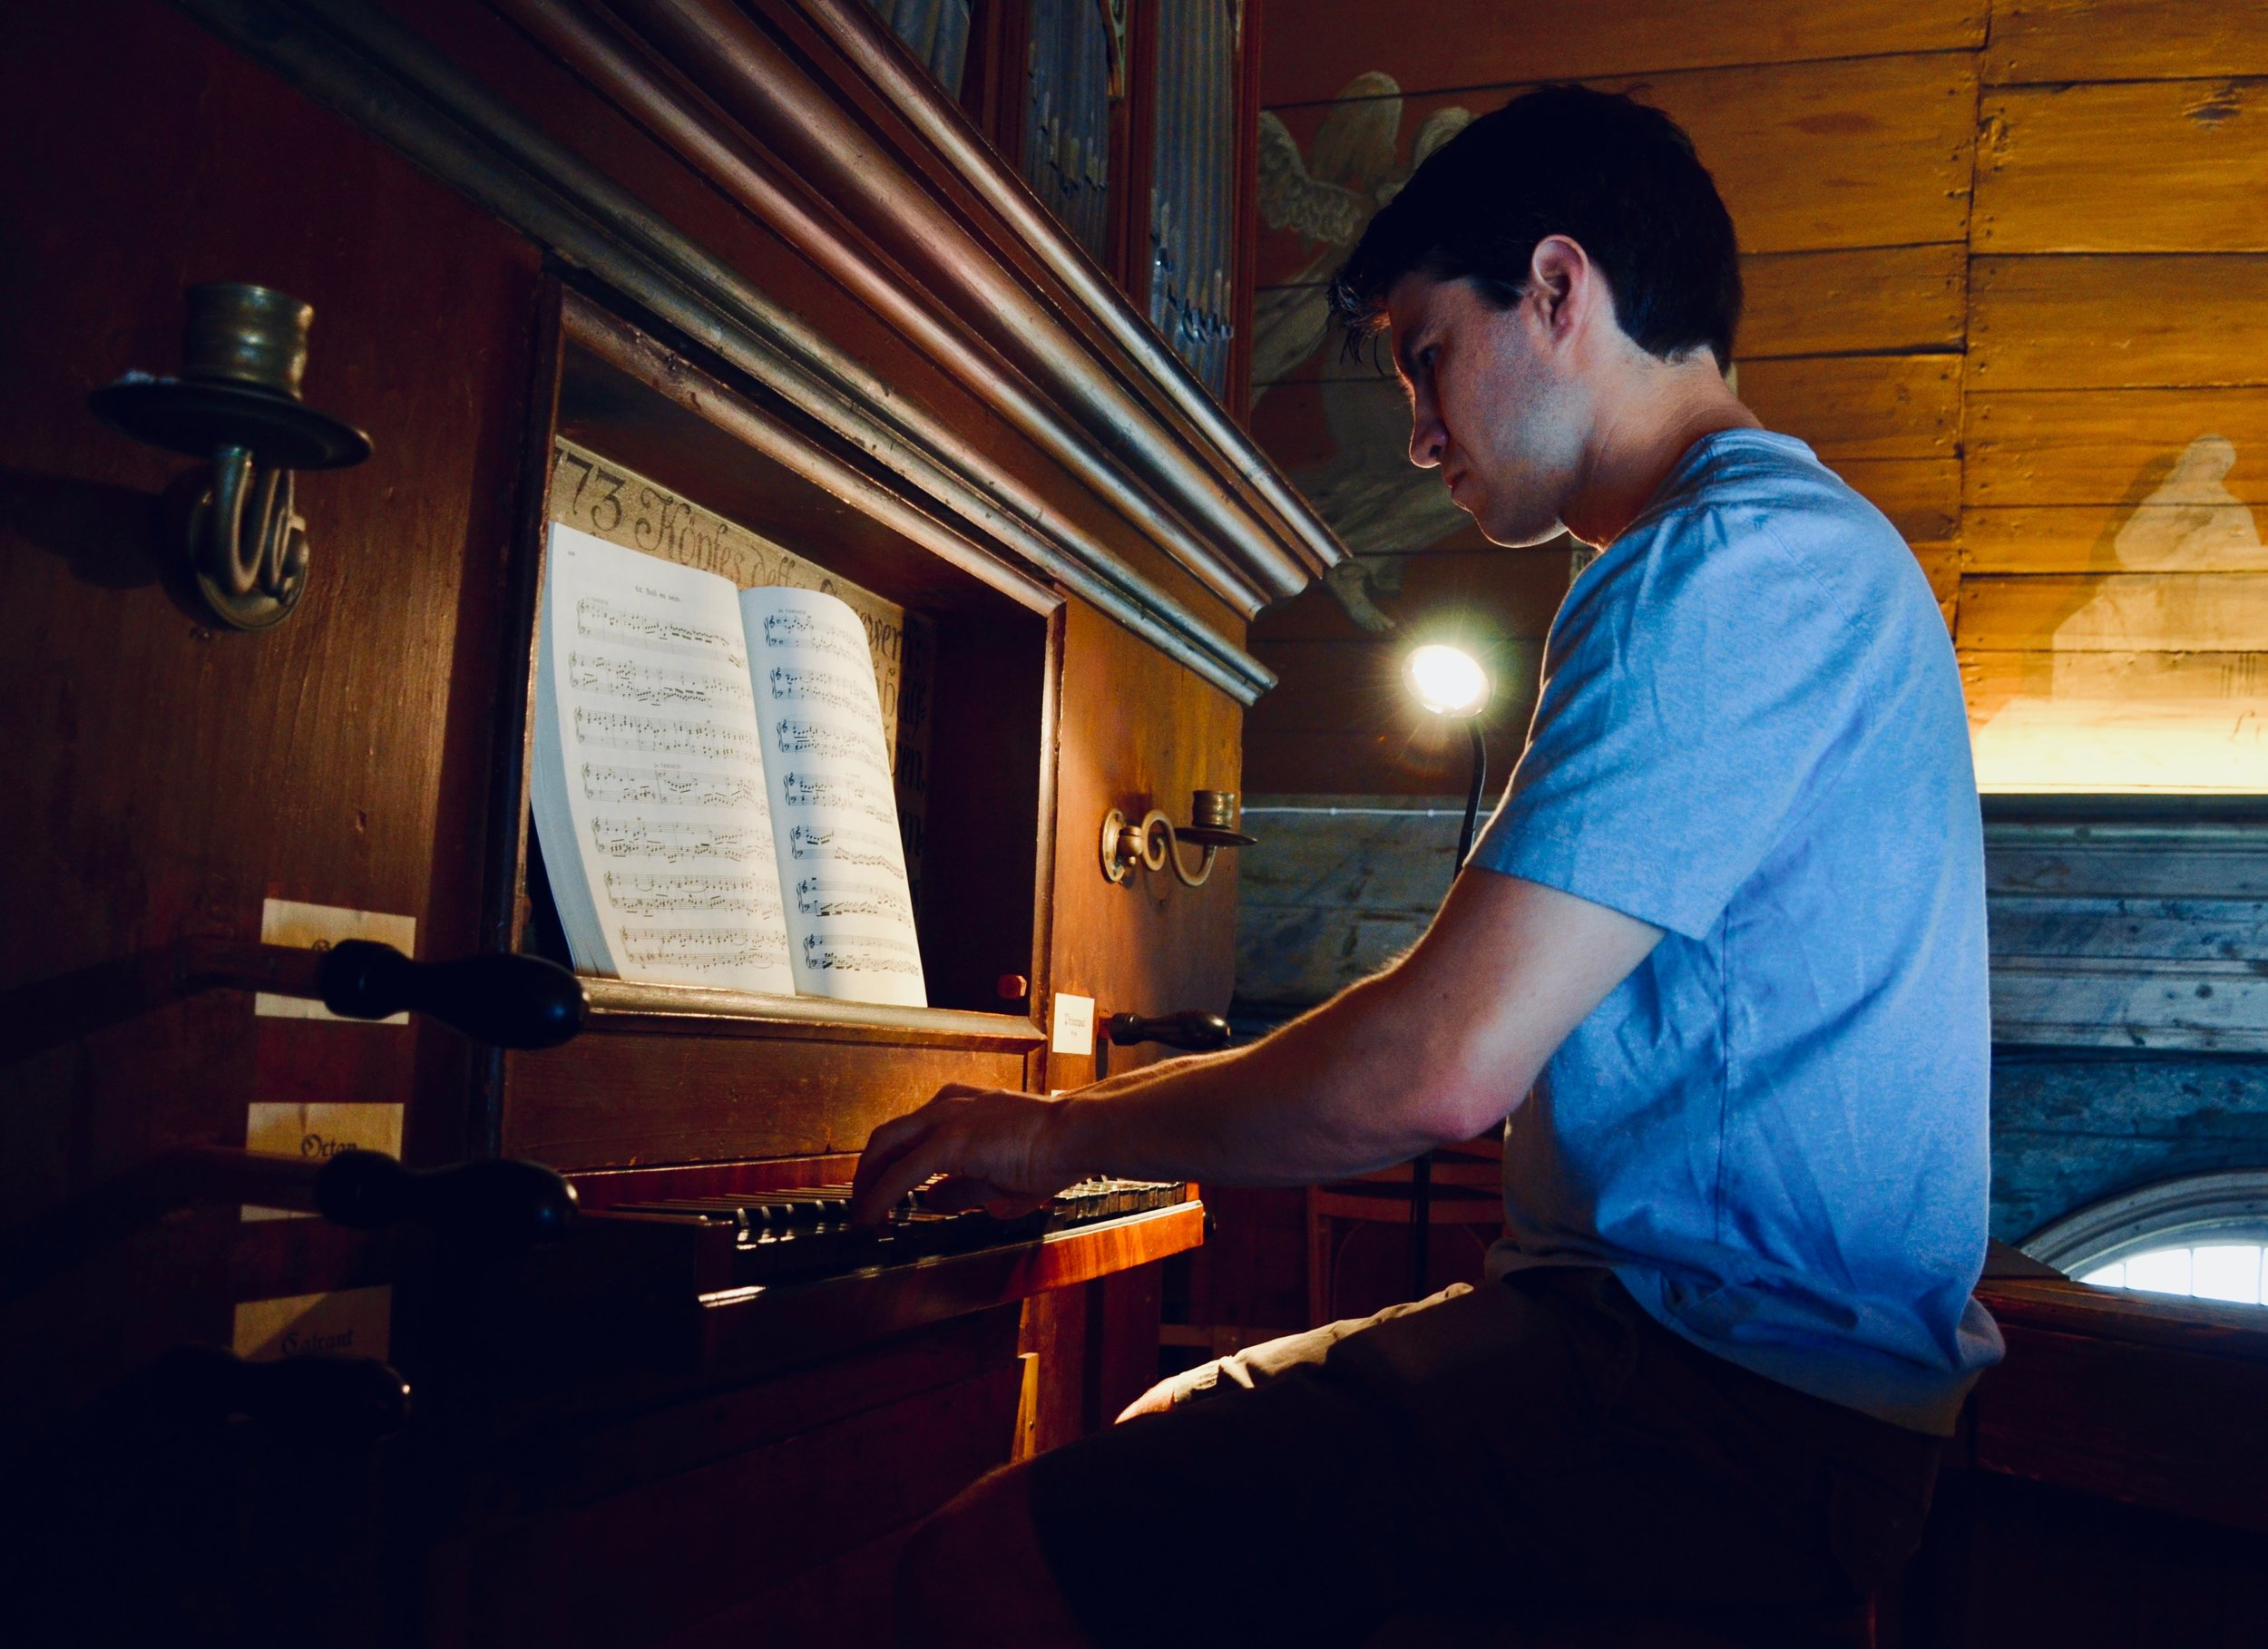 Brandon Santini plays the historic organ in the 1652 chapel, Kulturen, Lund, Sweden.